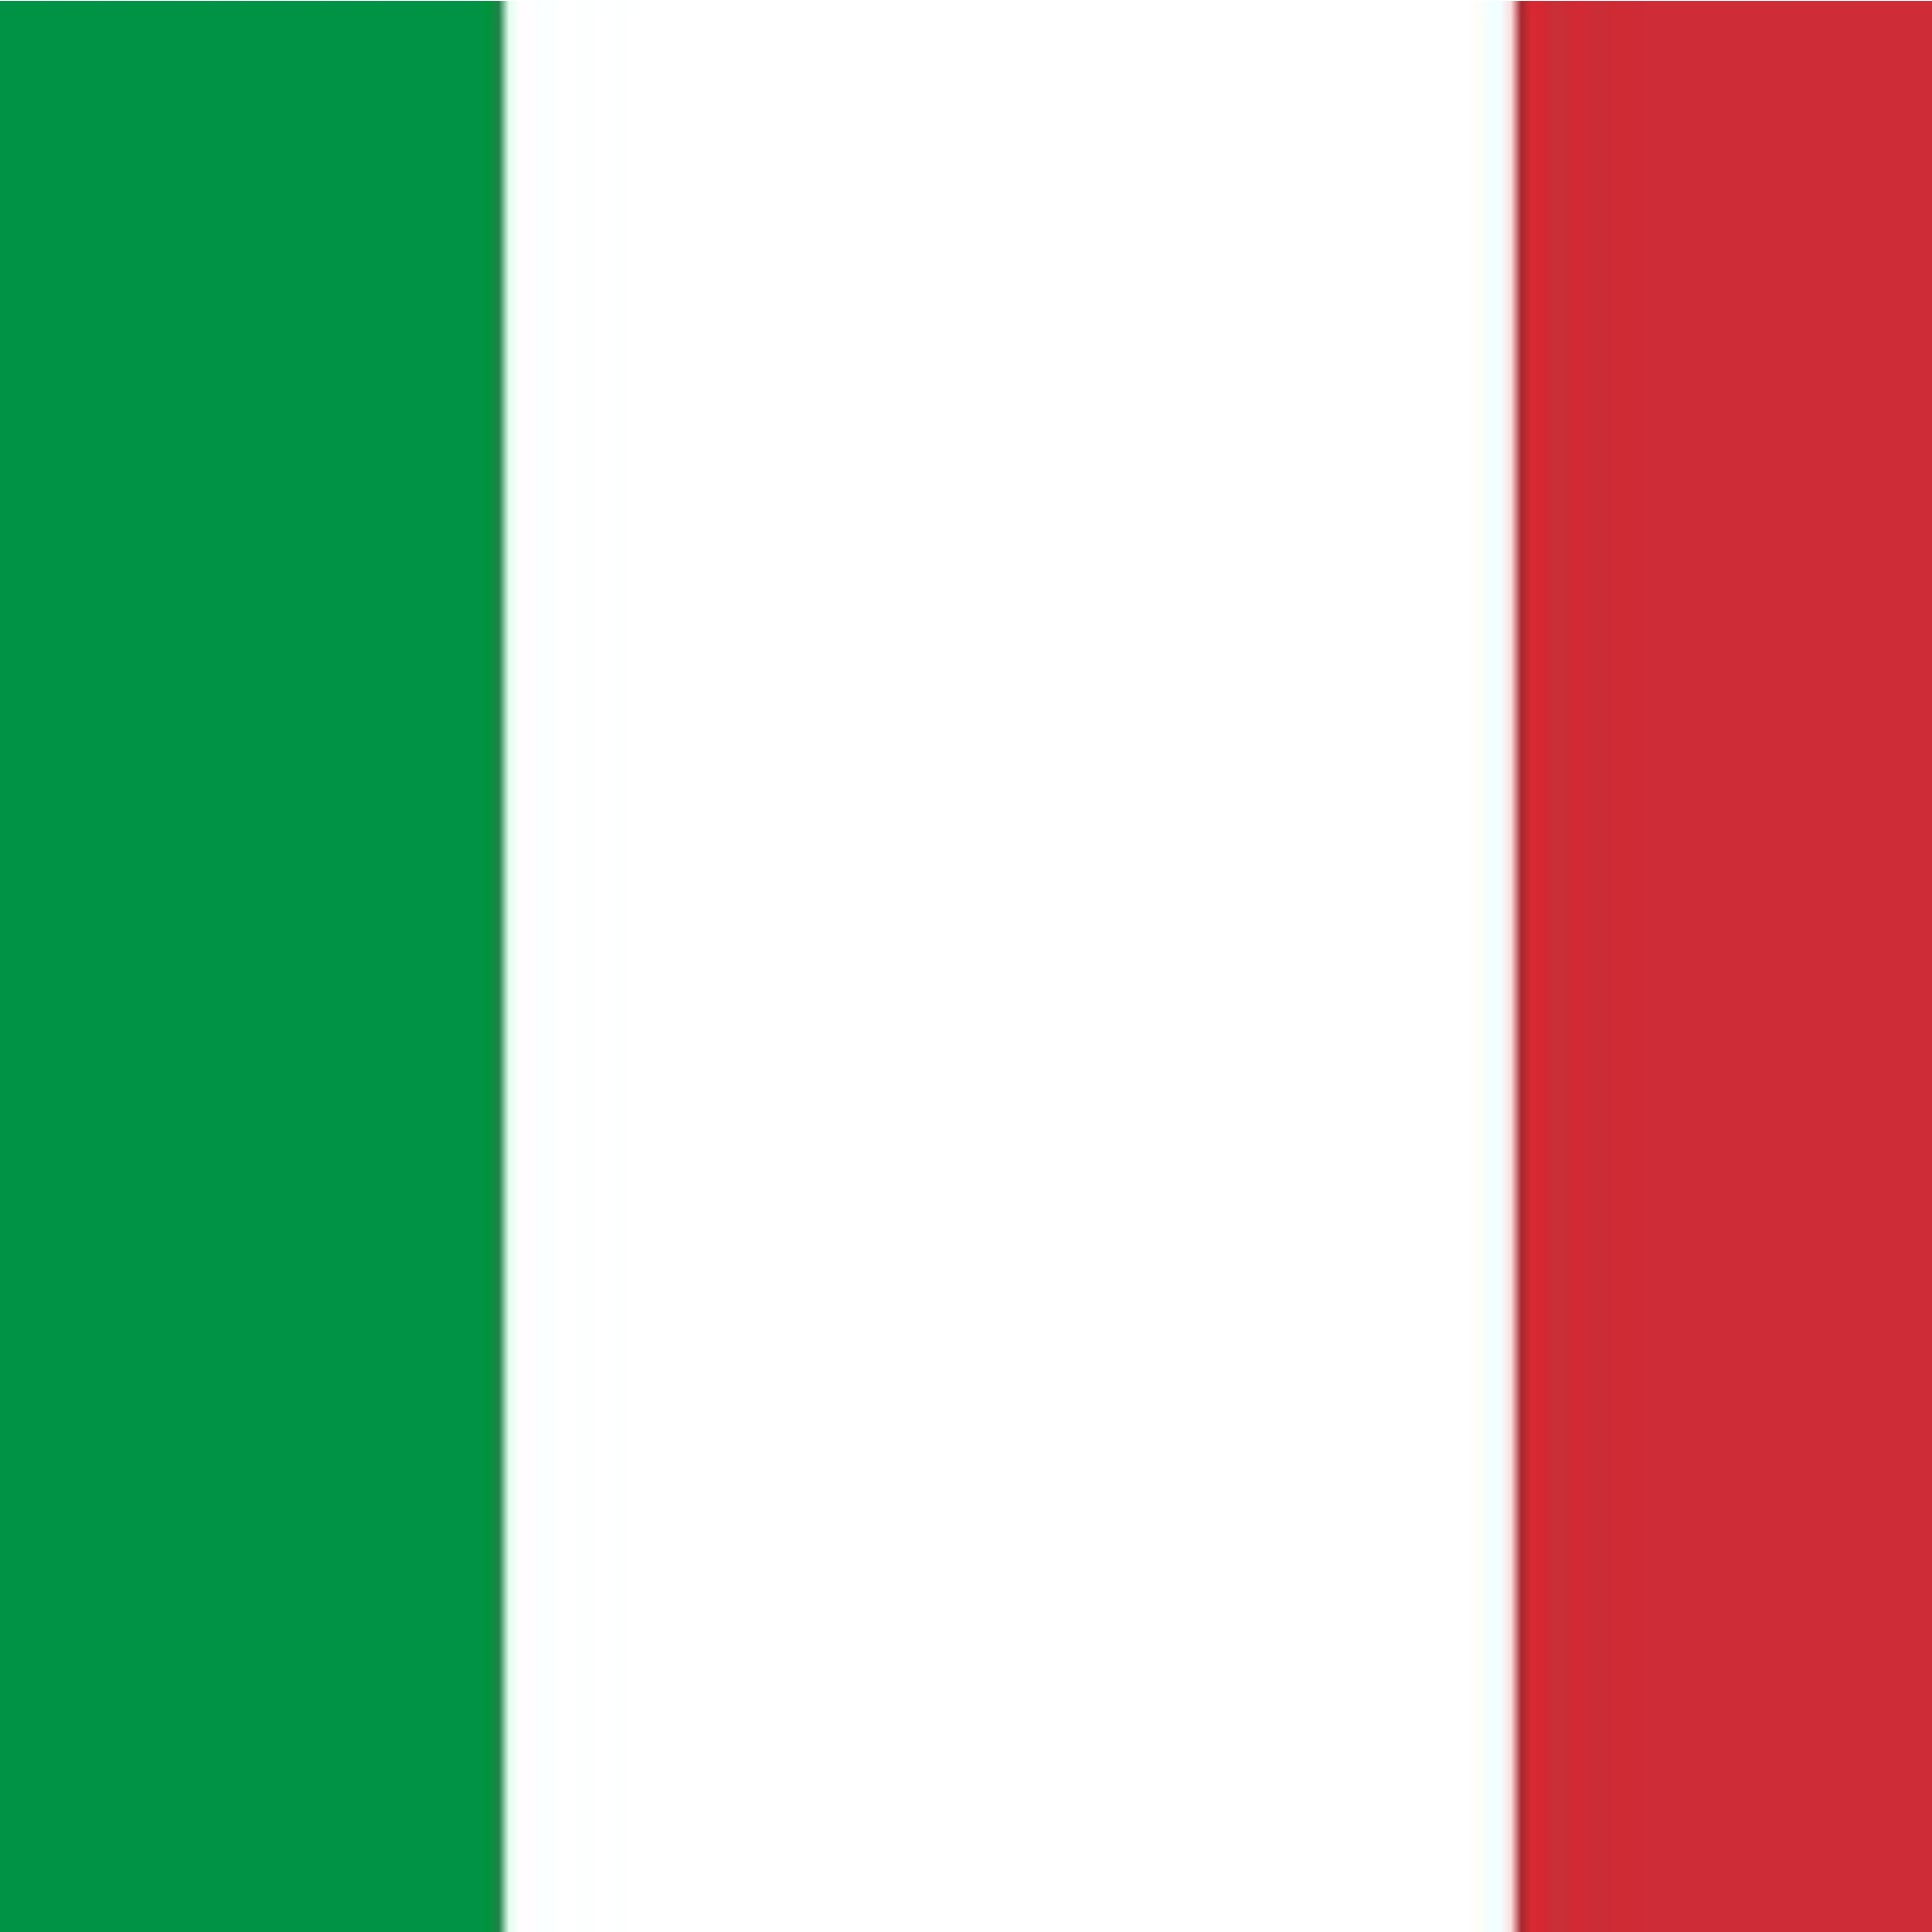 Honorary vice-consulate of Italy (Alicante)